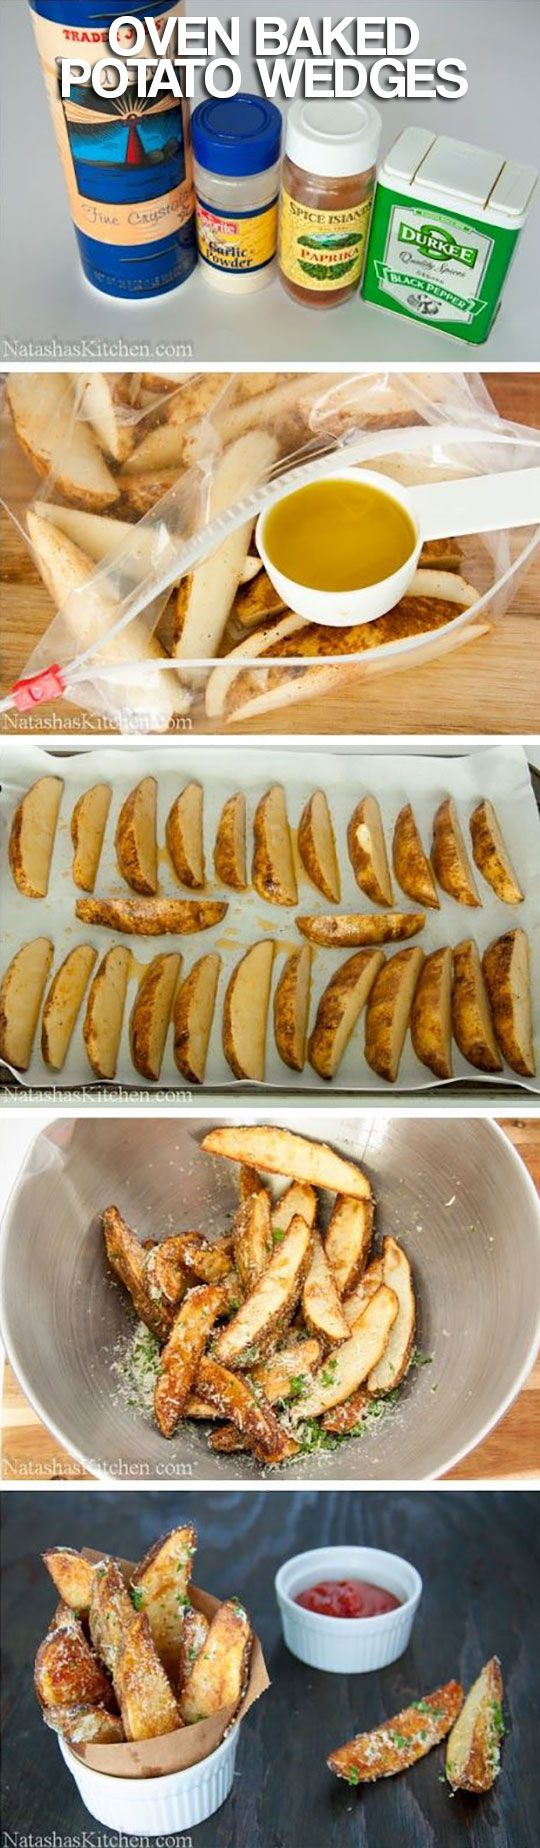 Oven baked potato wedges to die for…